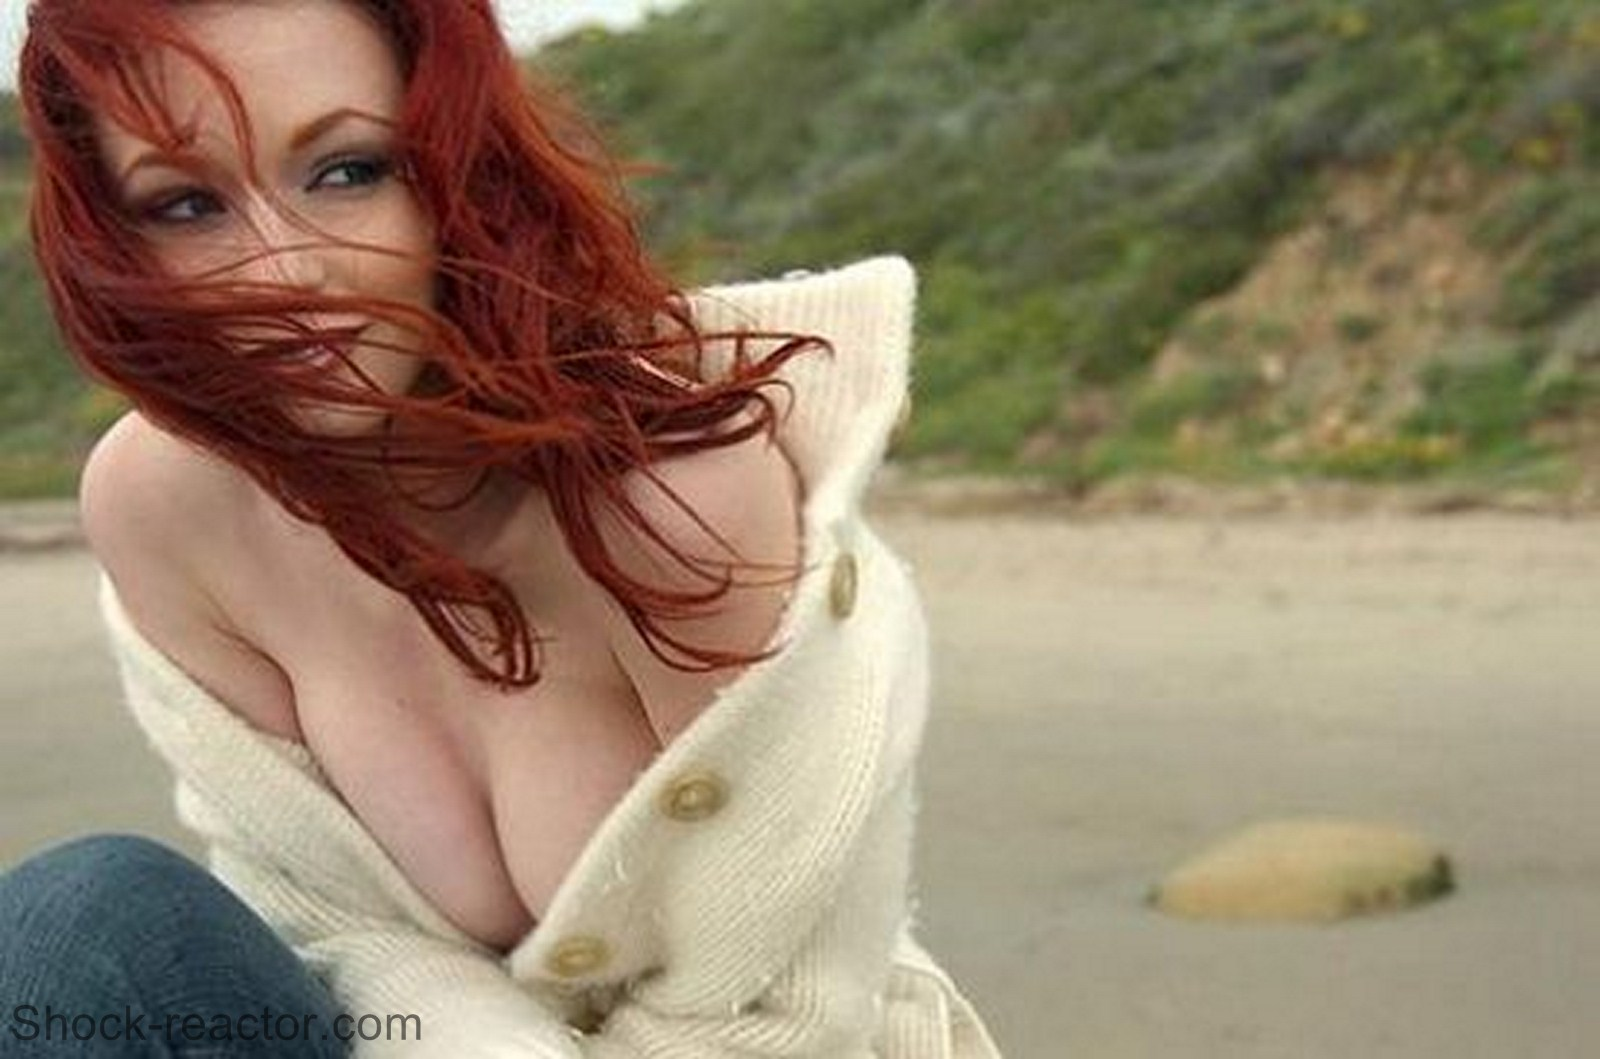 This hot redhead is using two vibrators 1